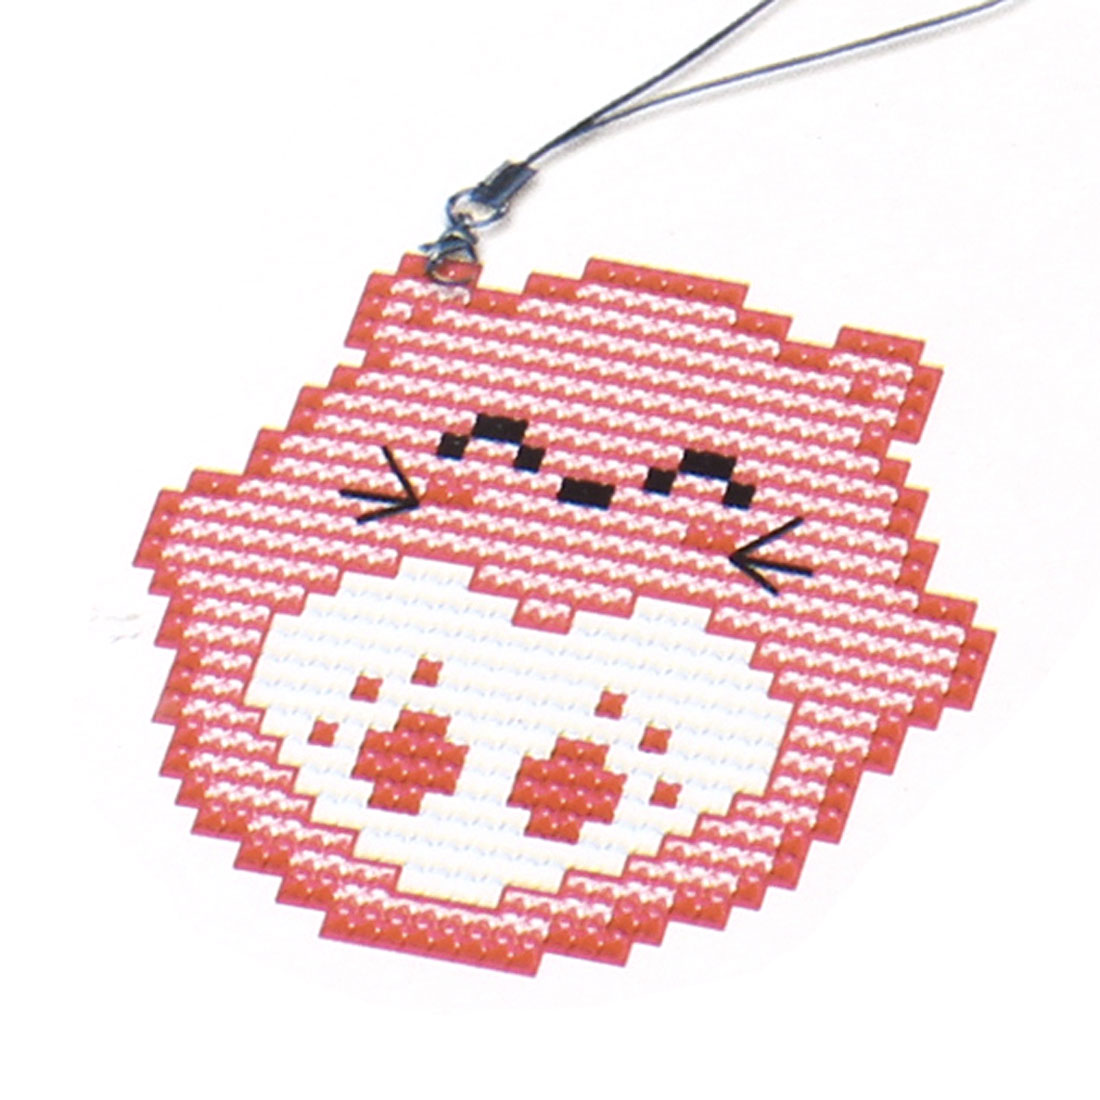 Woman Counted Pink Smiling Mouse Handbag Pendant Cross Stitch Counted Kit Set